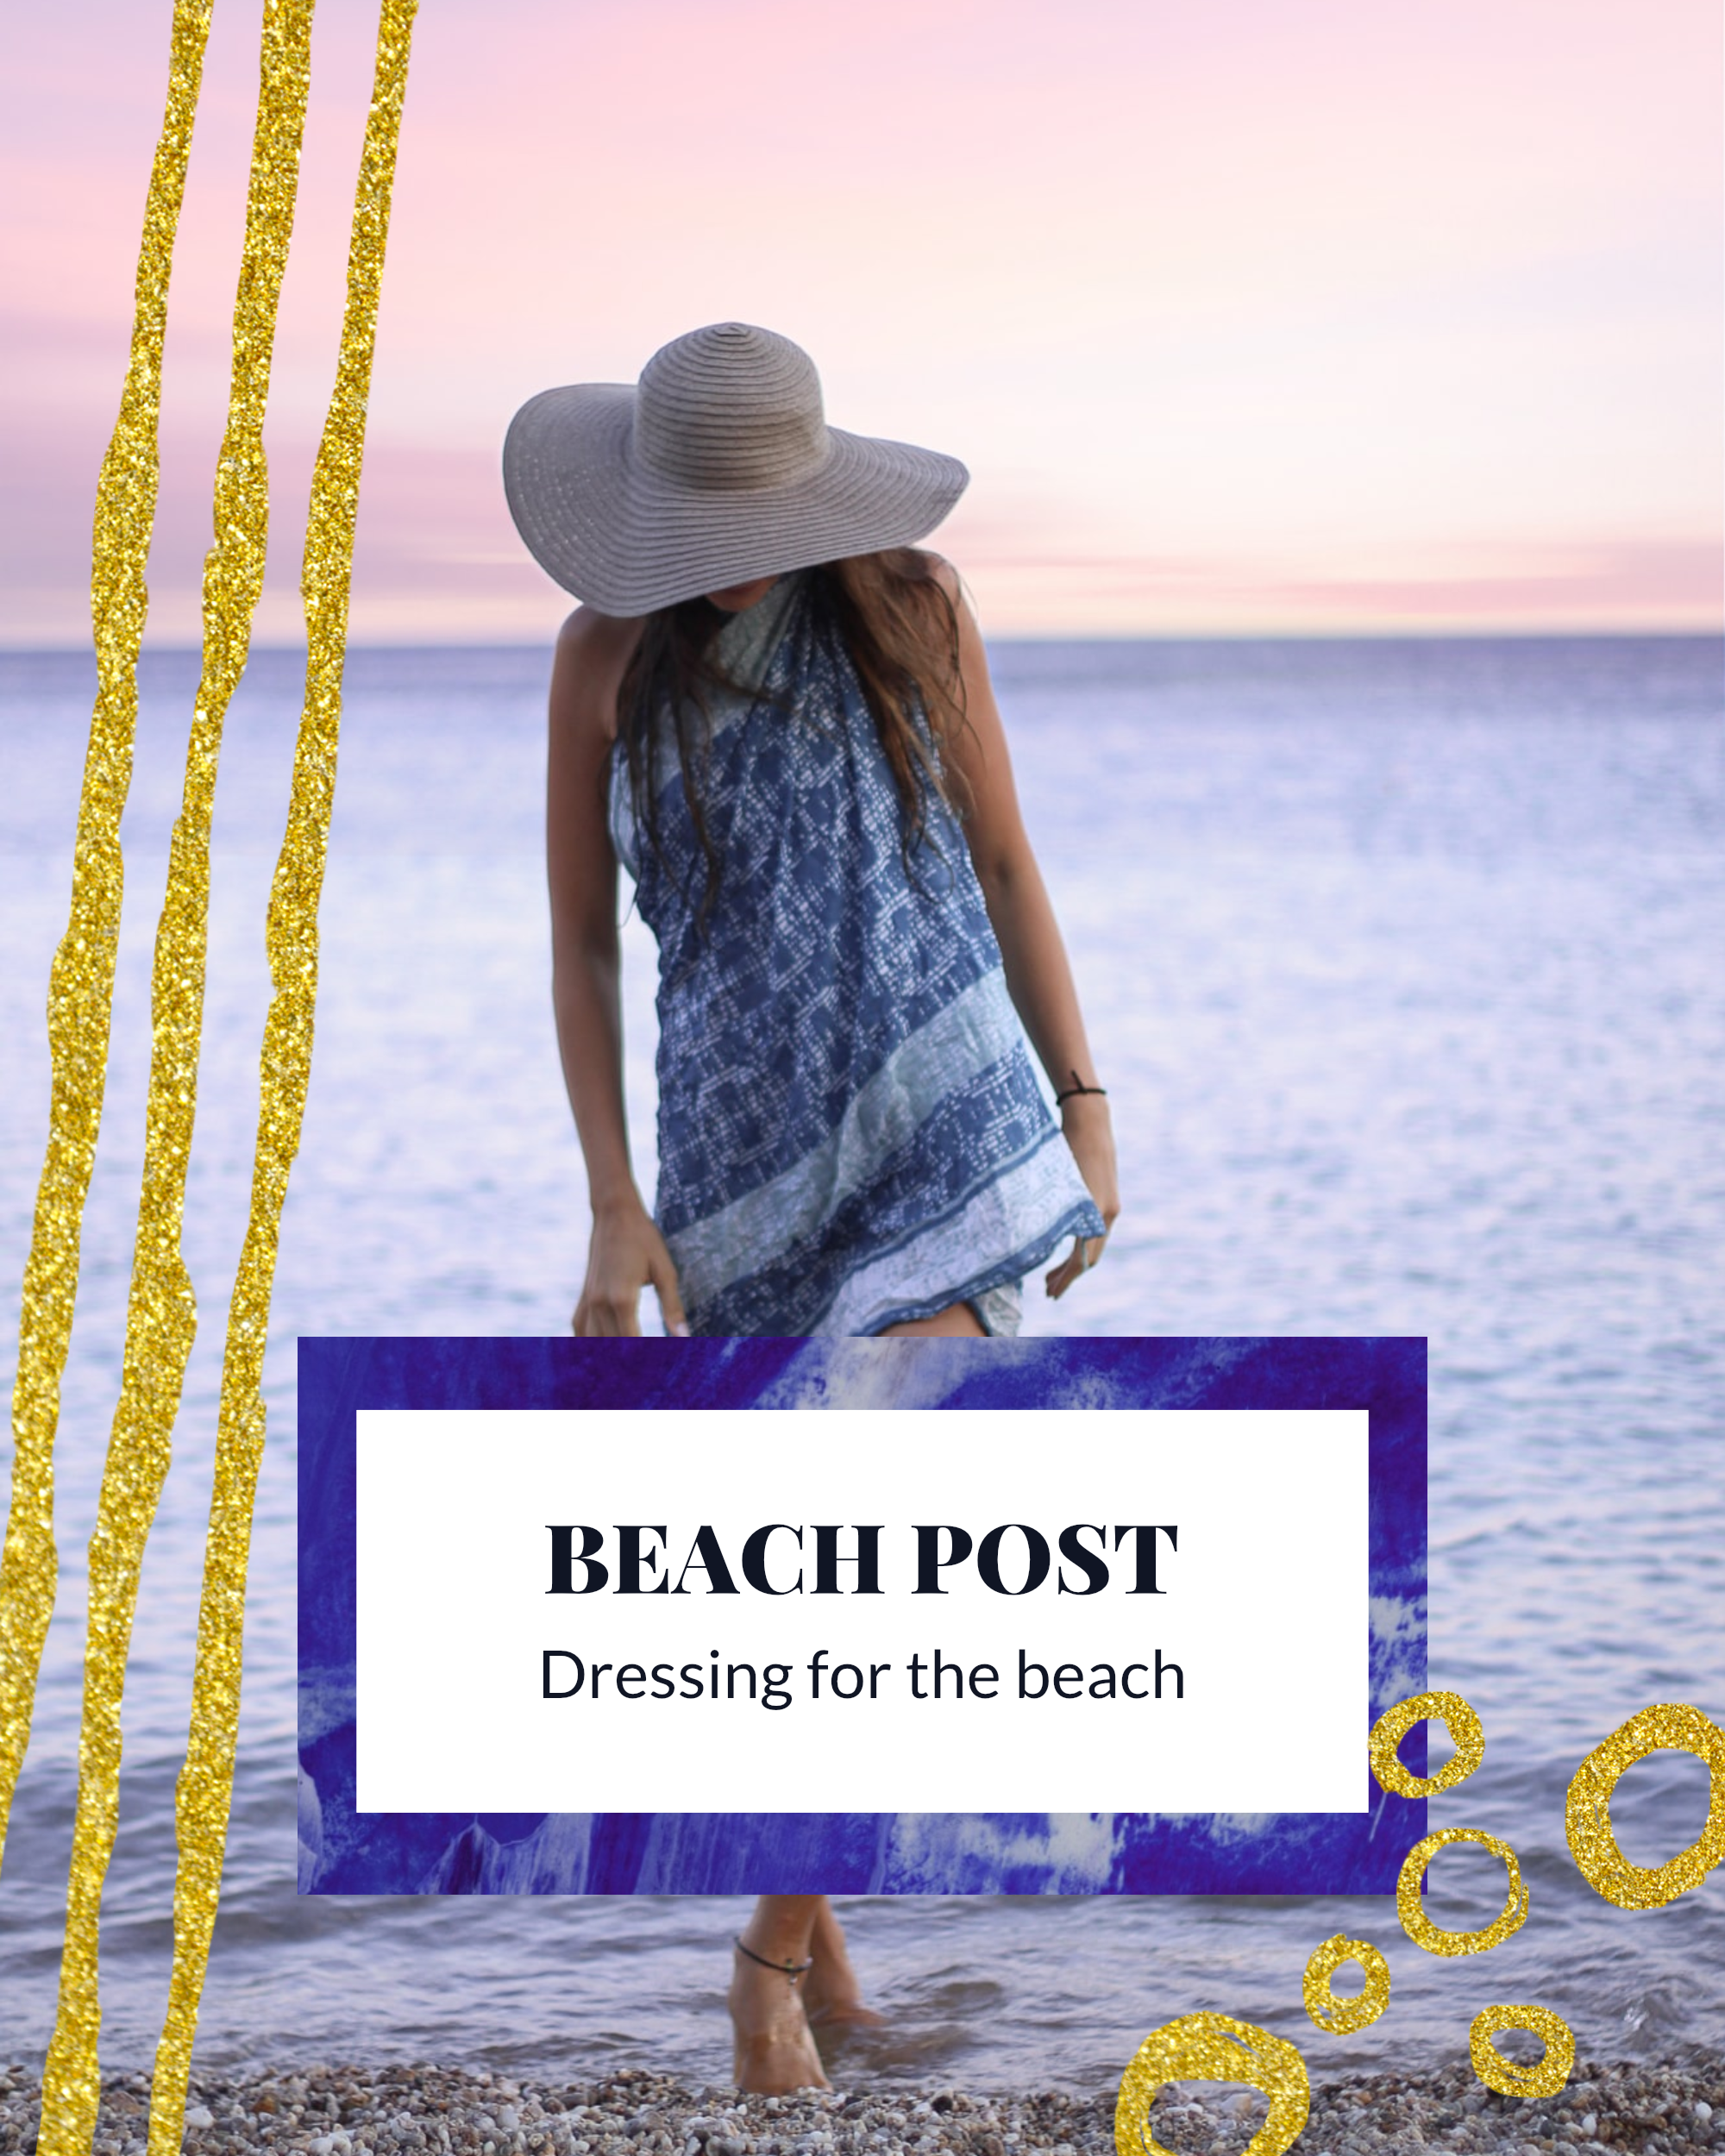 #bluegold Post collection - BEACH POST Dressing for the beach Instagram Post Template